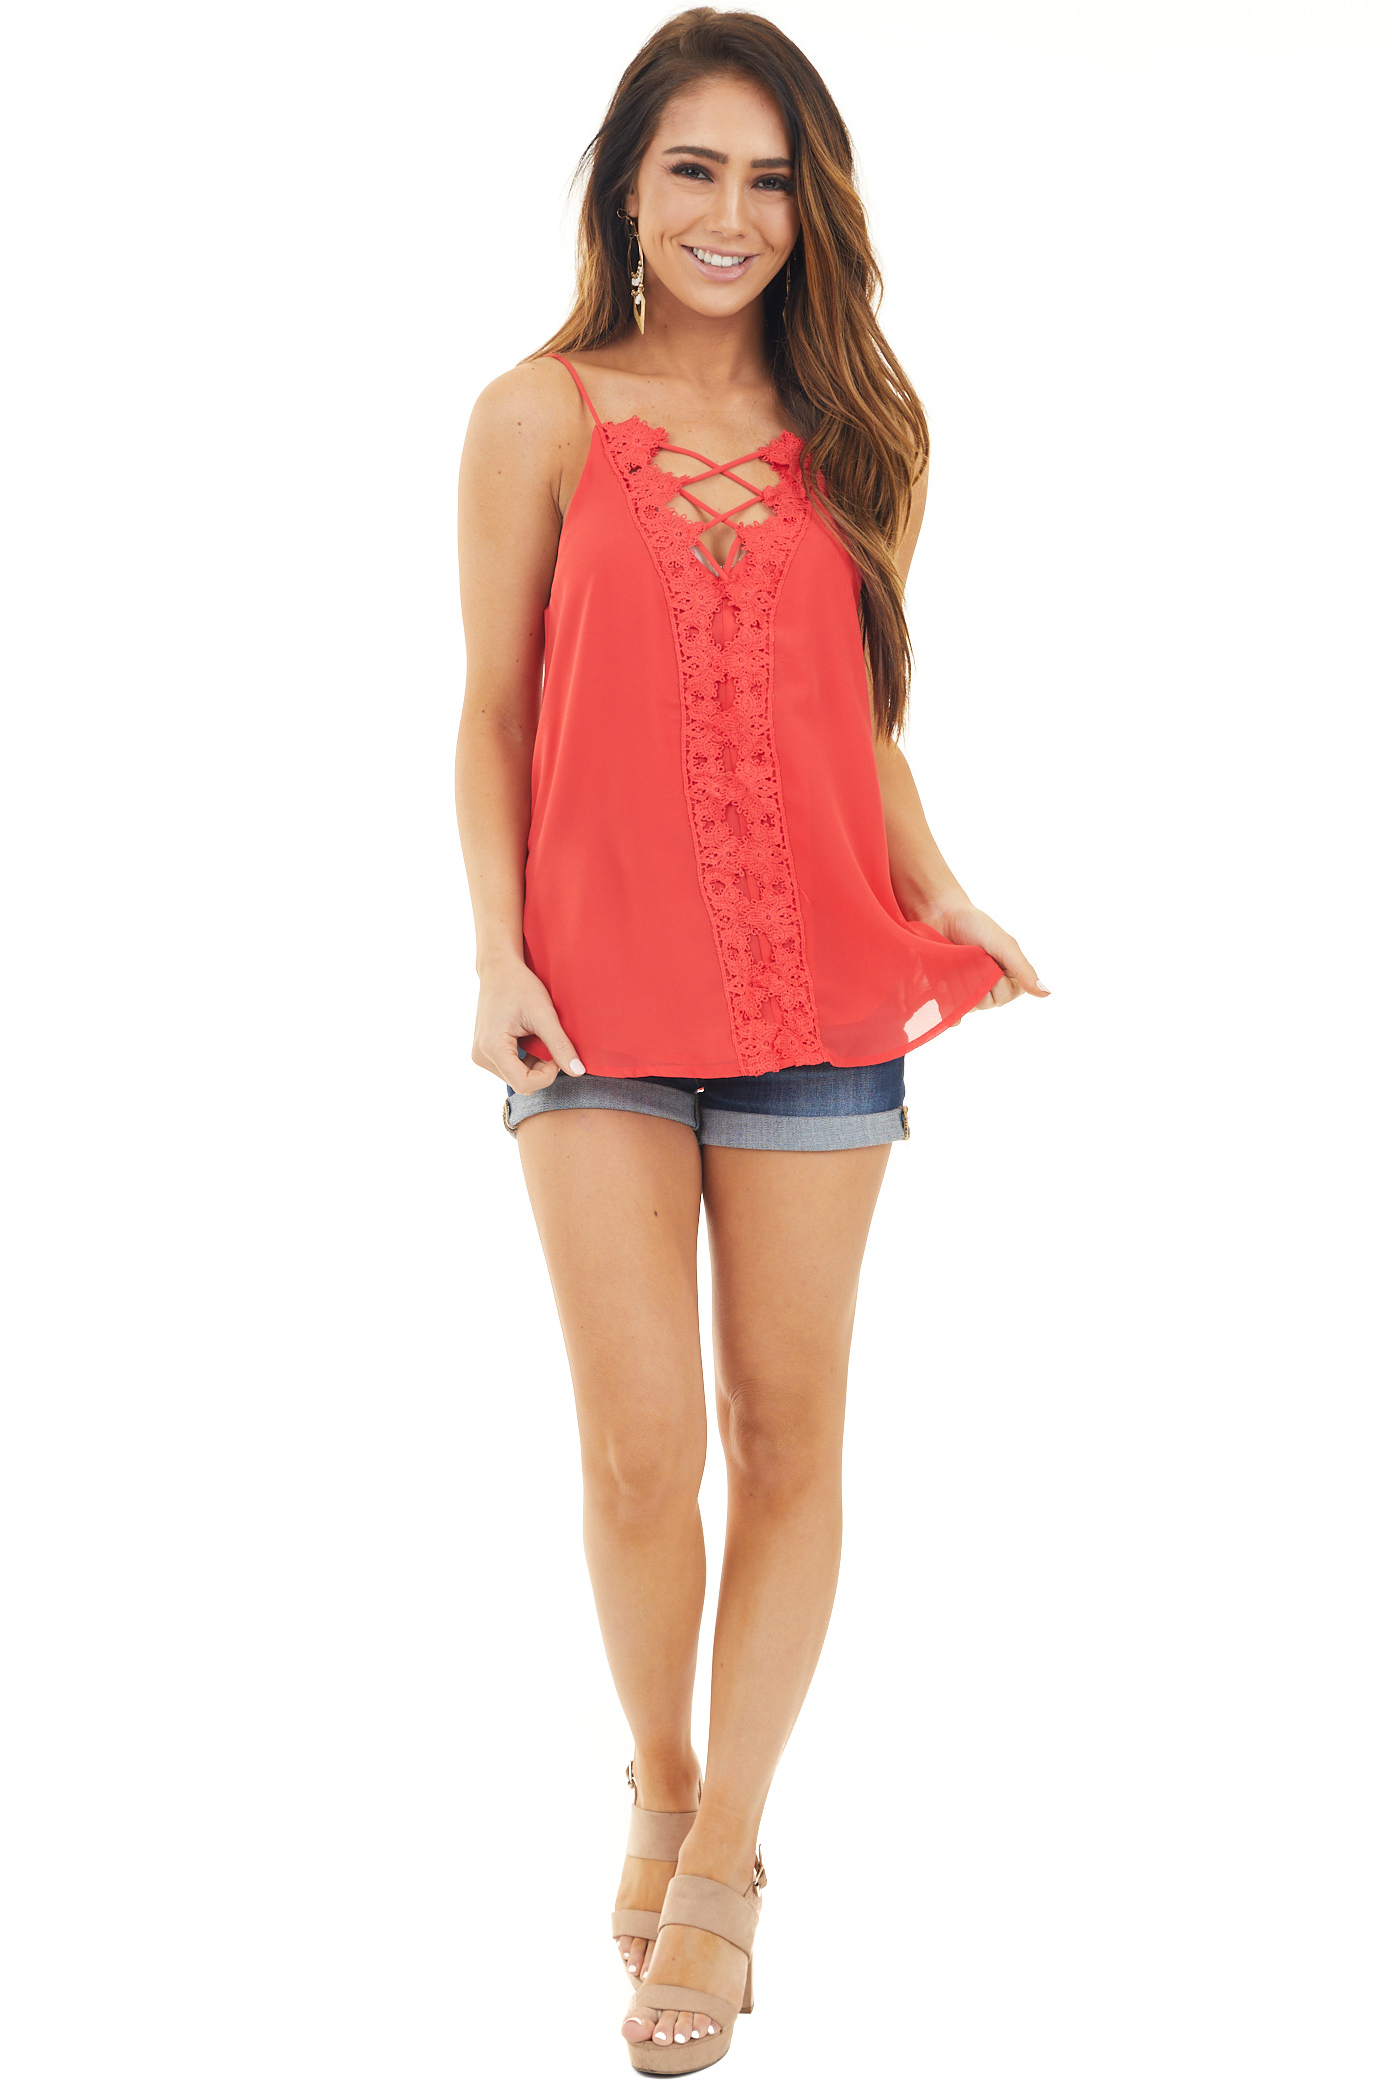 Tomato Red Plunging V Neck Top with Scalloped Lace Detail